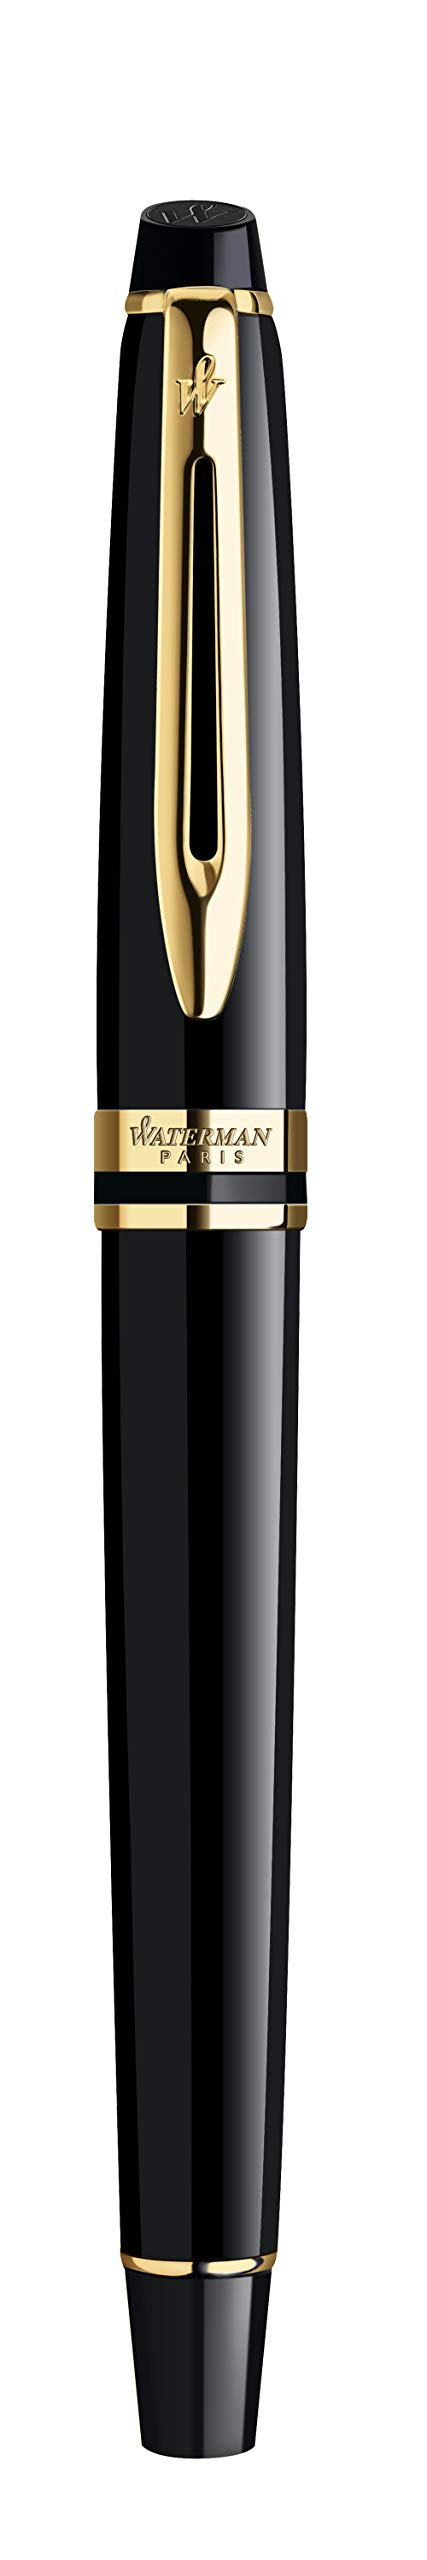 Waterman Expert Fountain Pen, Gloss Black with 23k Gold Trim, Medium Nib with Blue Ink Cartridge, Gift Box by Prismacolor (Image #6)